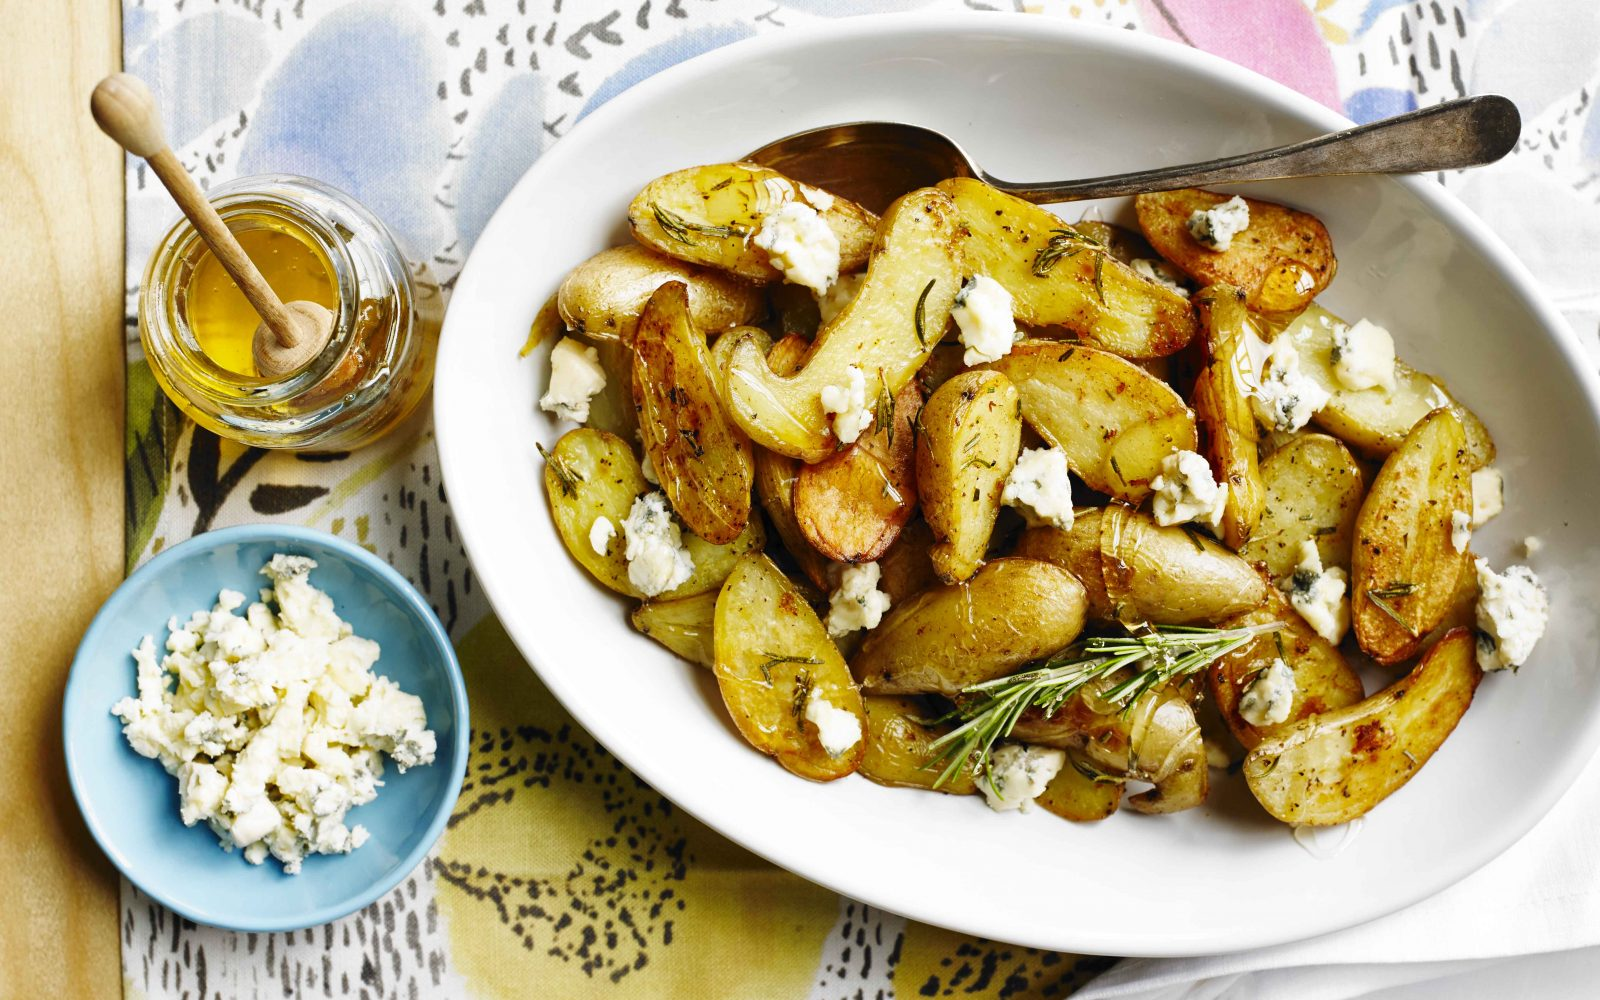 Gorgonzola and Honey Roasted Potatoes